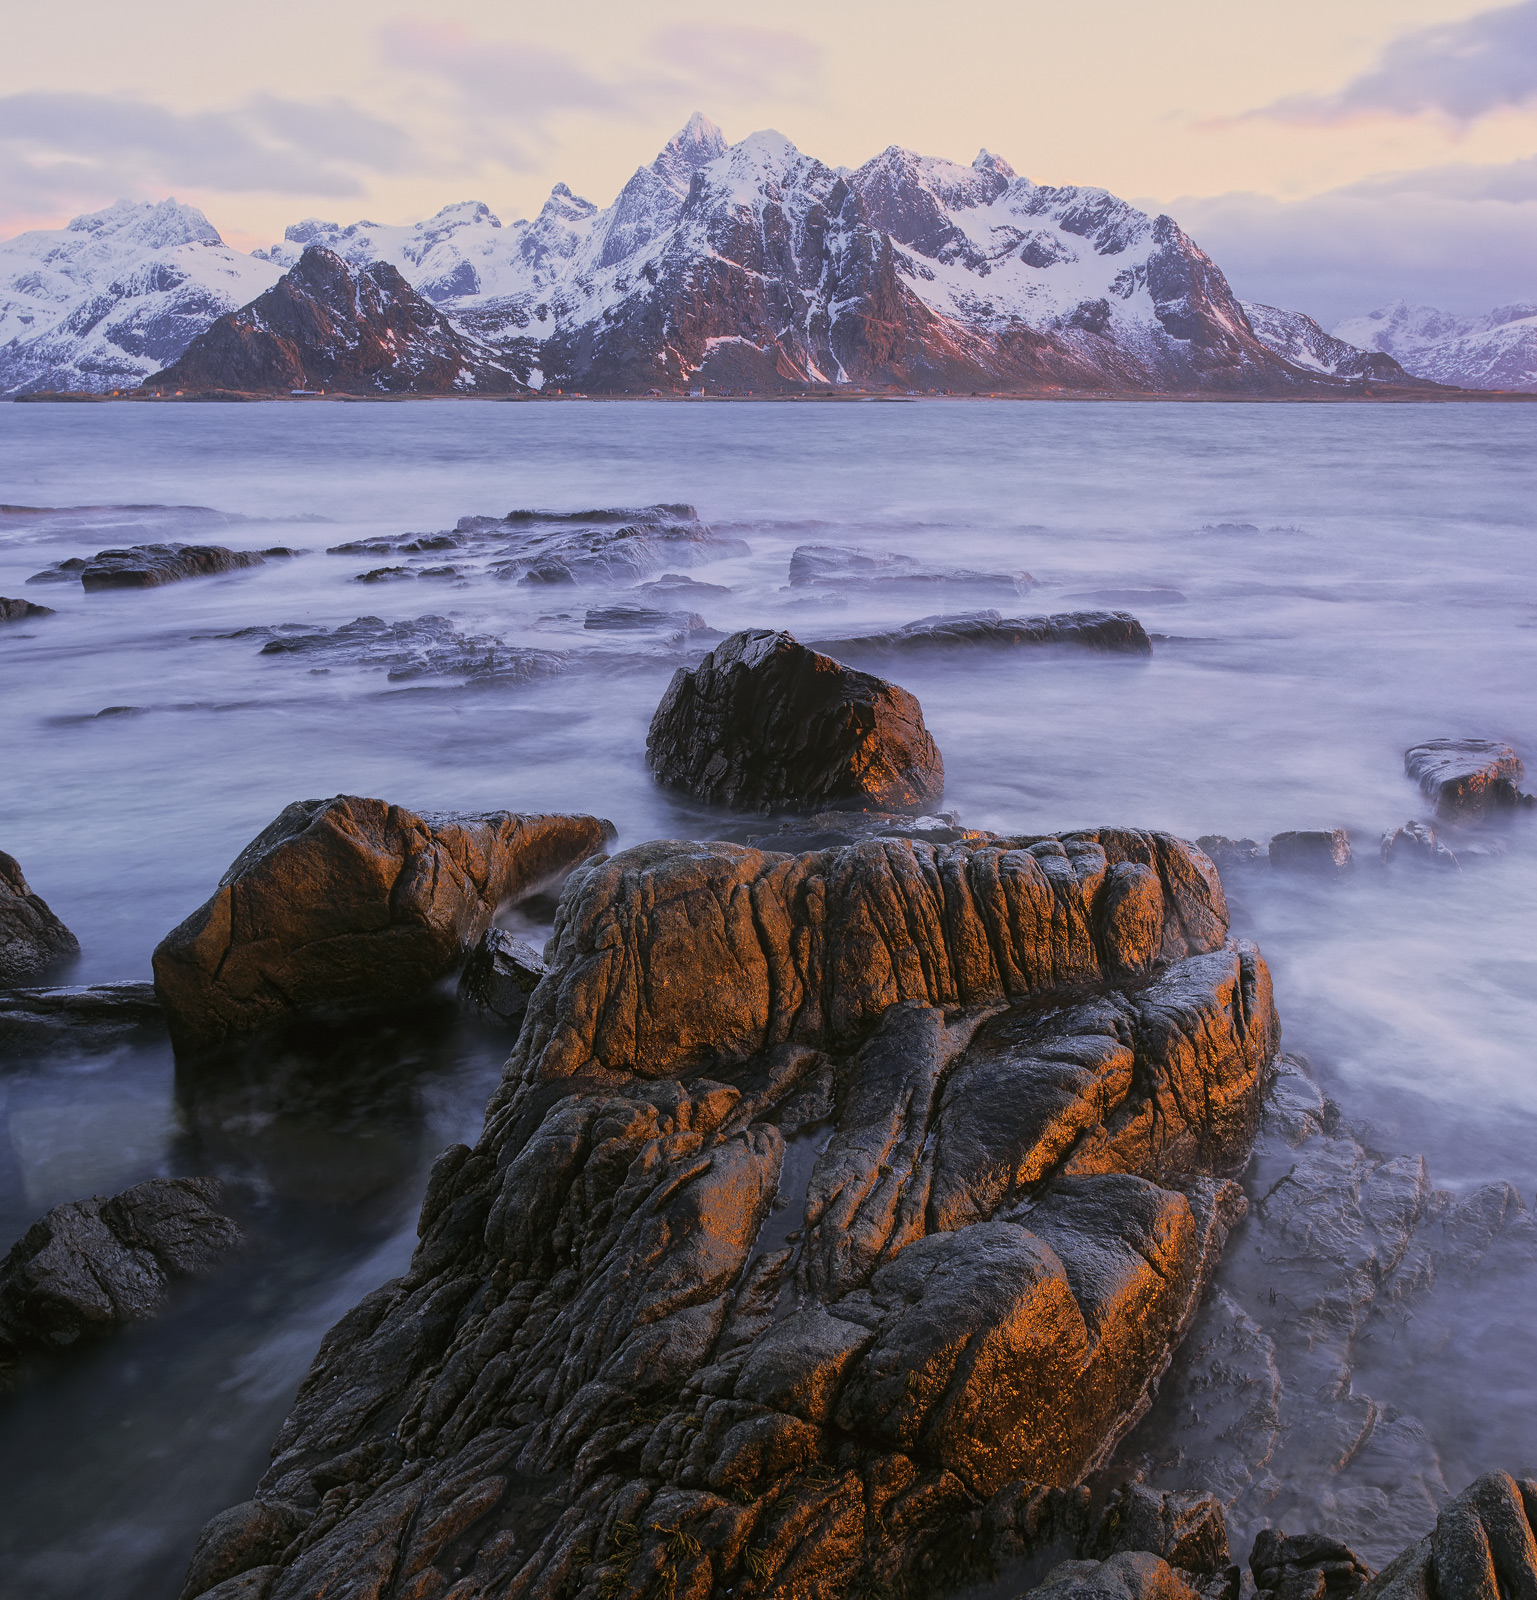 Lofoten has some of the most majestic peaks for their relatively small size that I have seen anywhere on my travels and they...